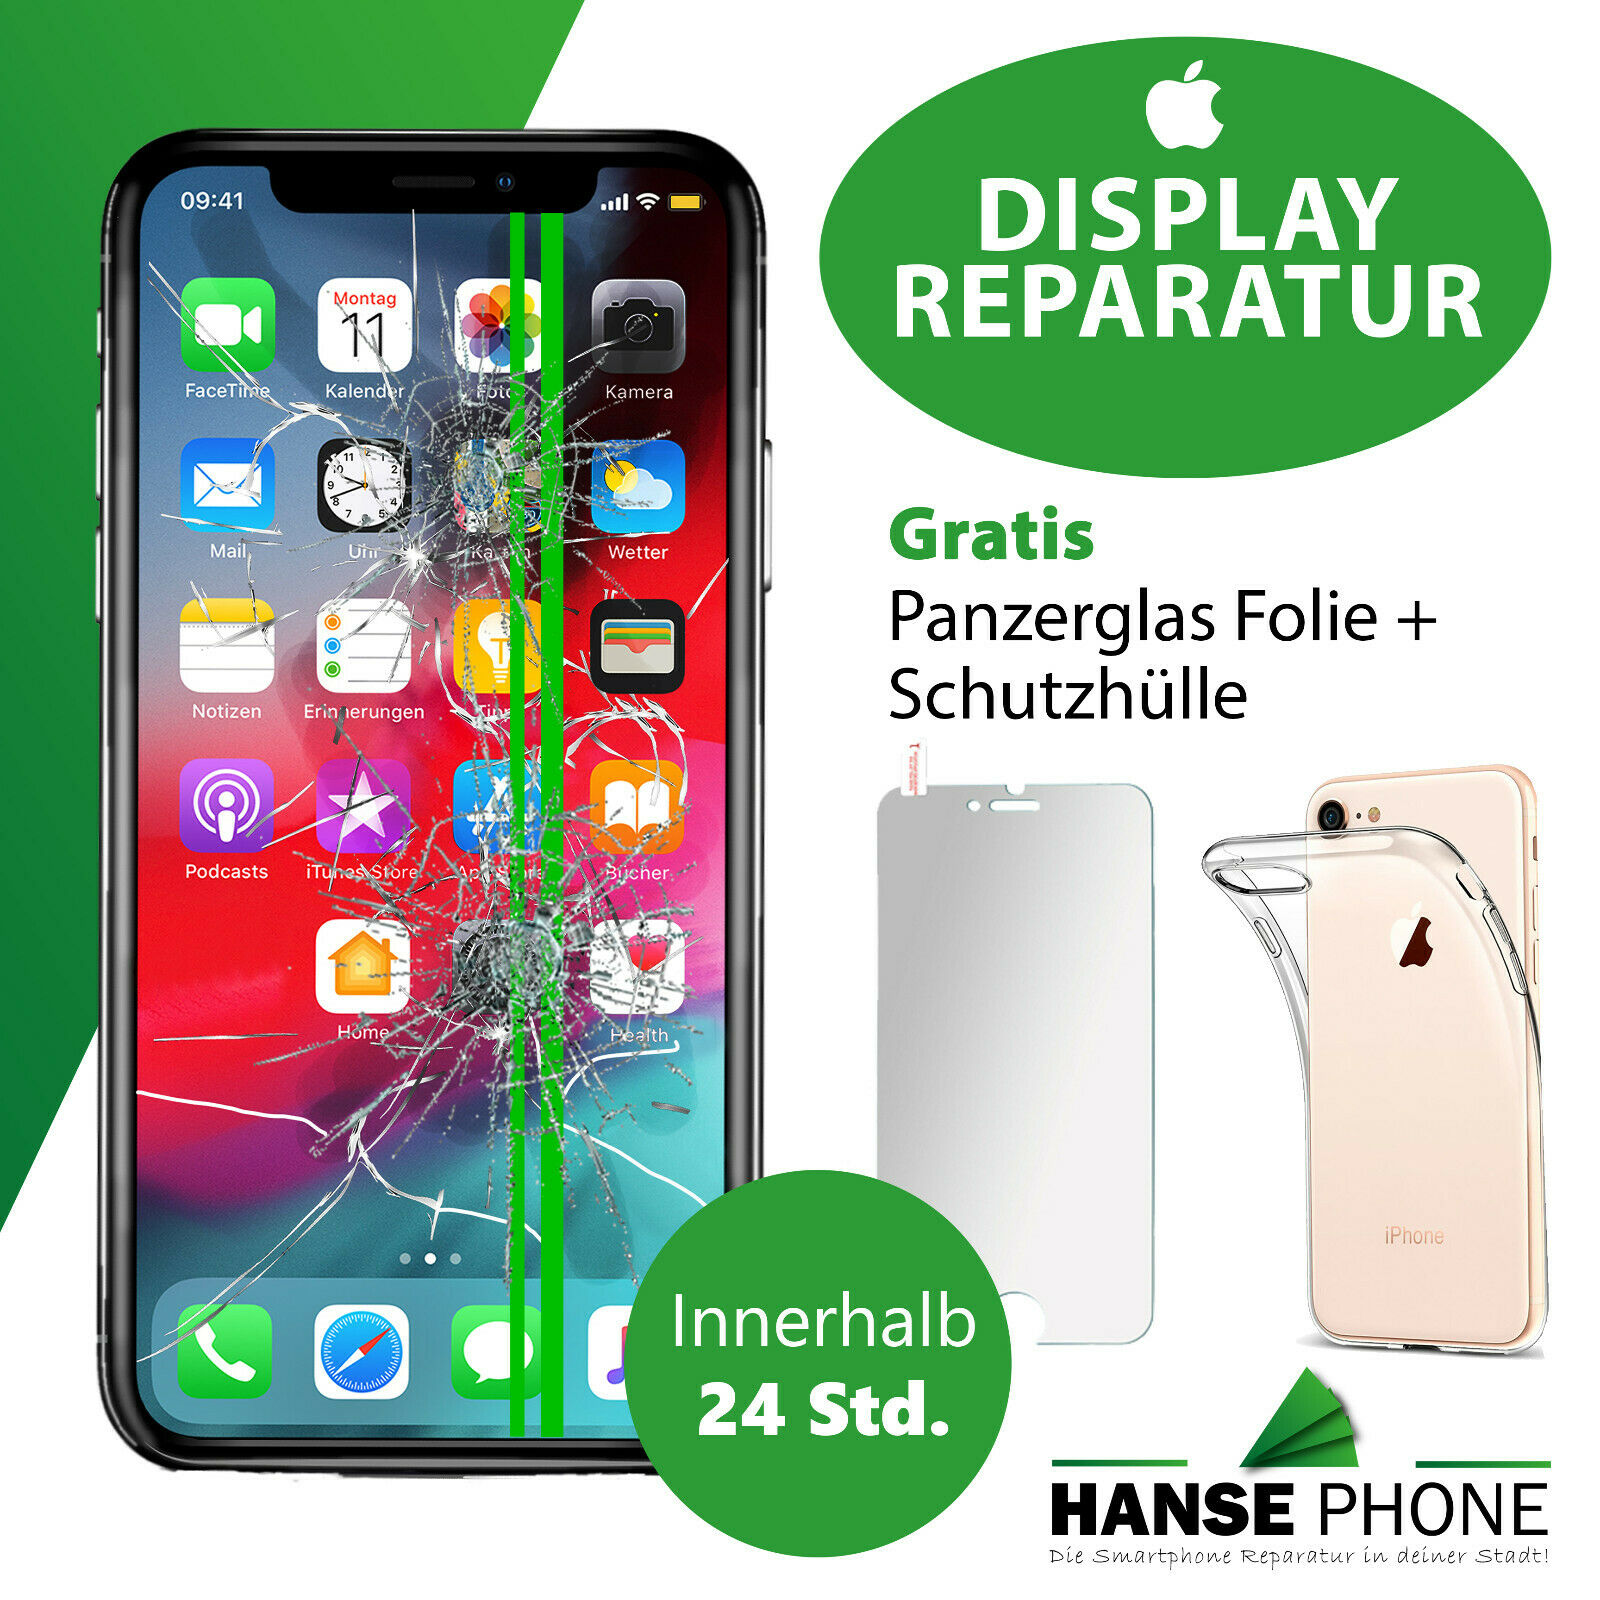 iphone 7 display reparatur günstig